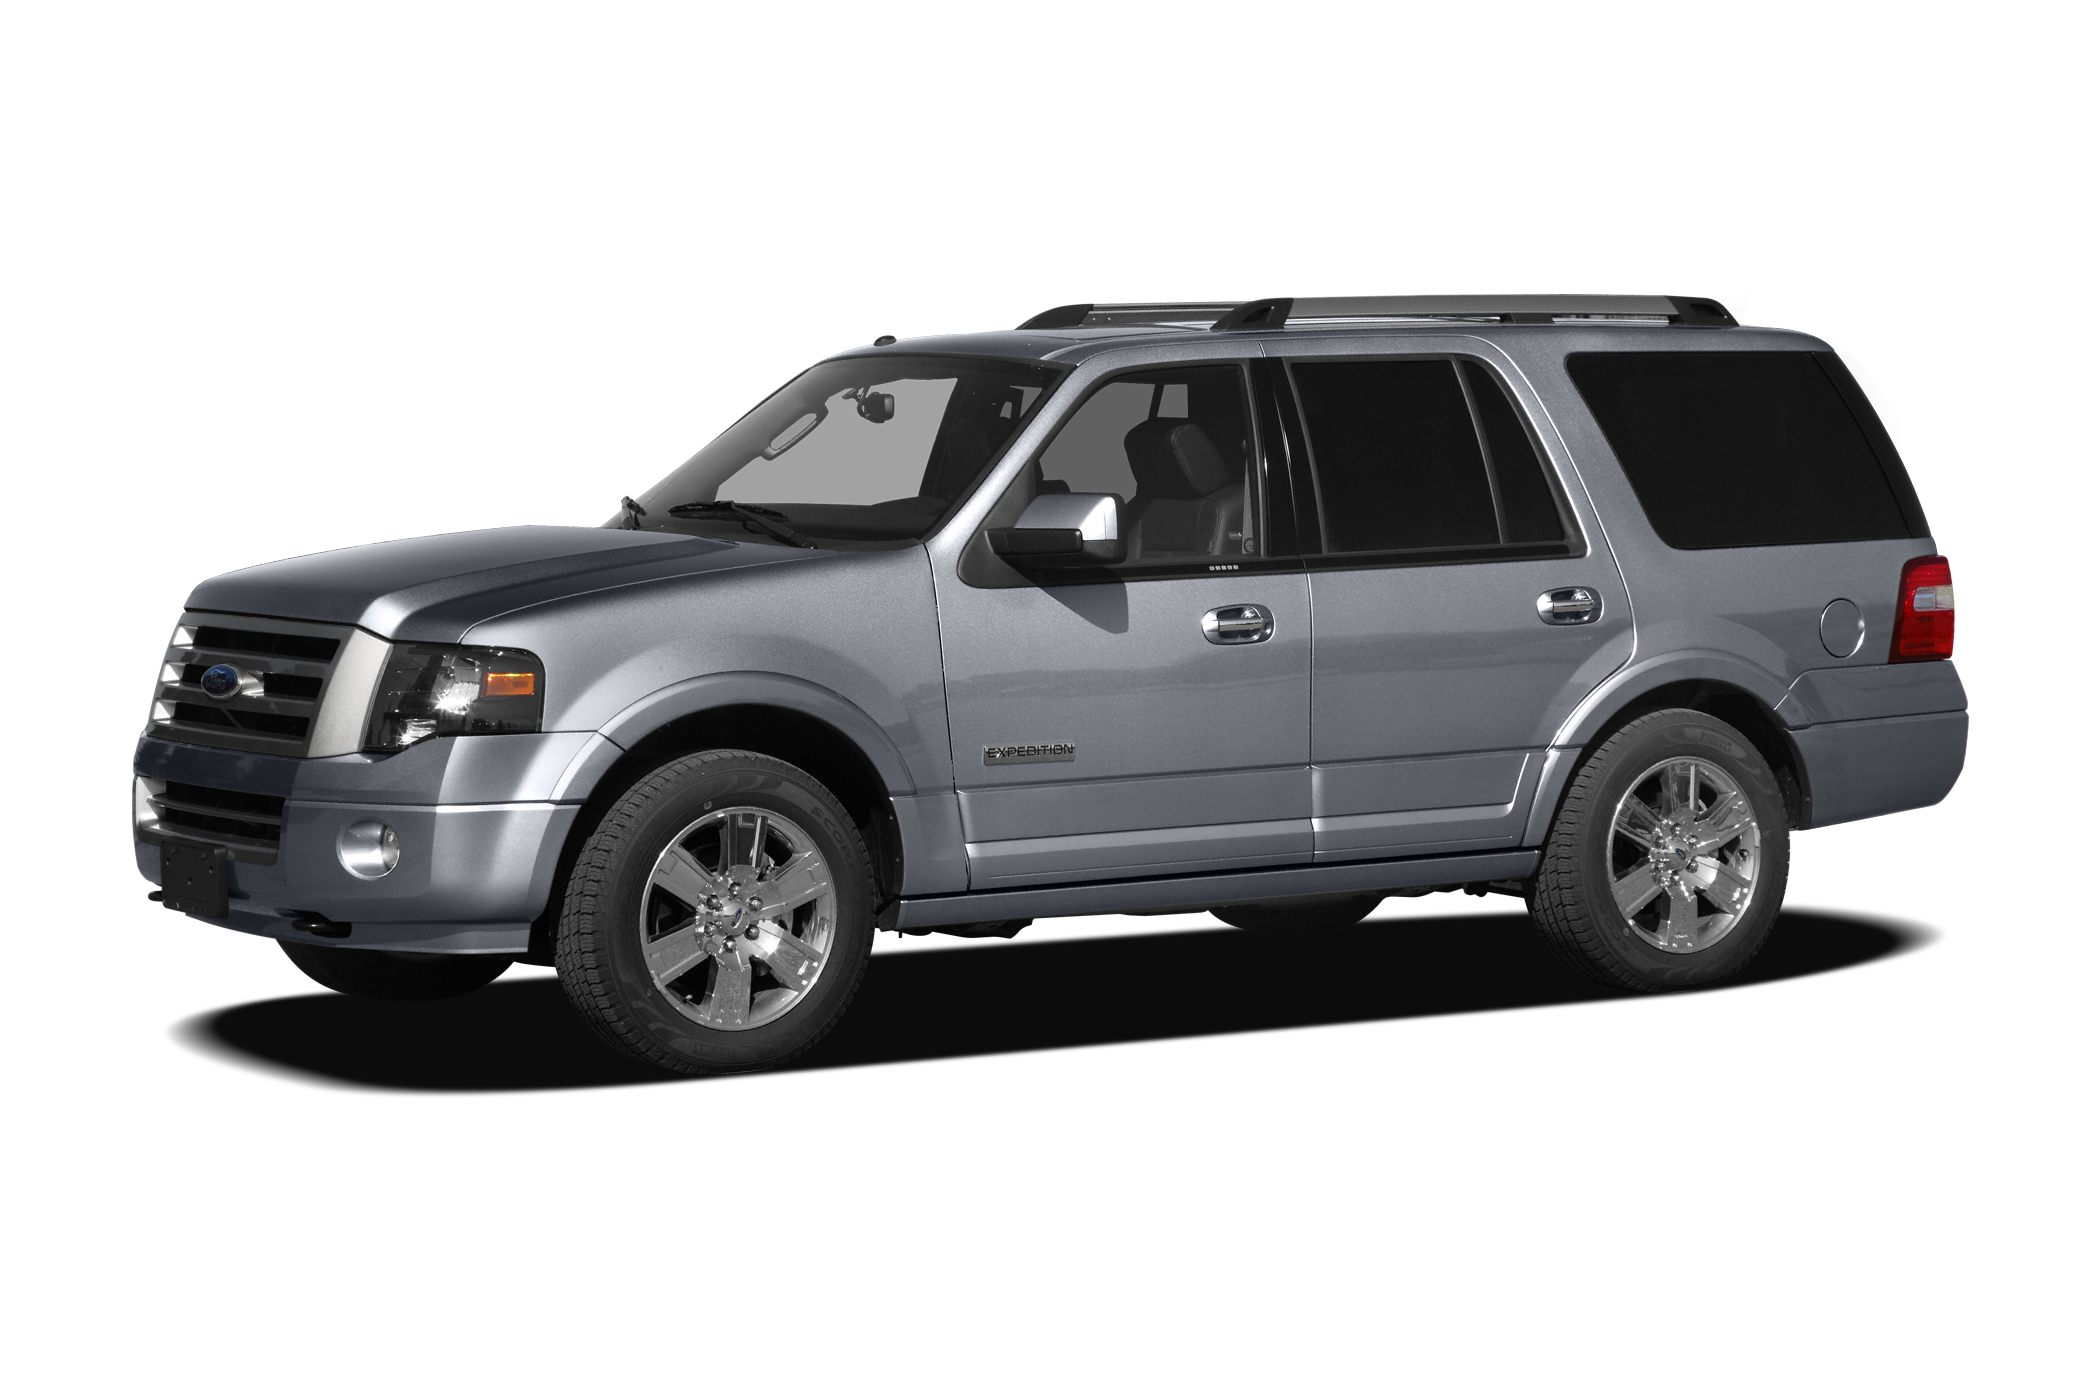 2010 Ford Expedition Eddie Bauer SUV for sale in San Angelo for $23,599 with 87,004 miles.